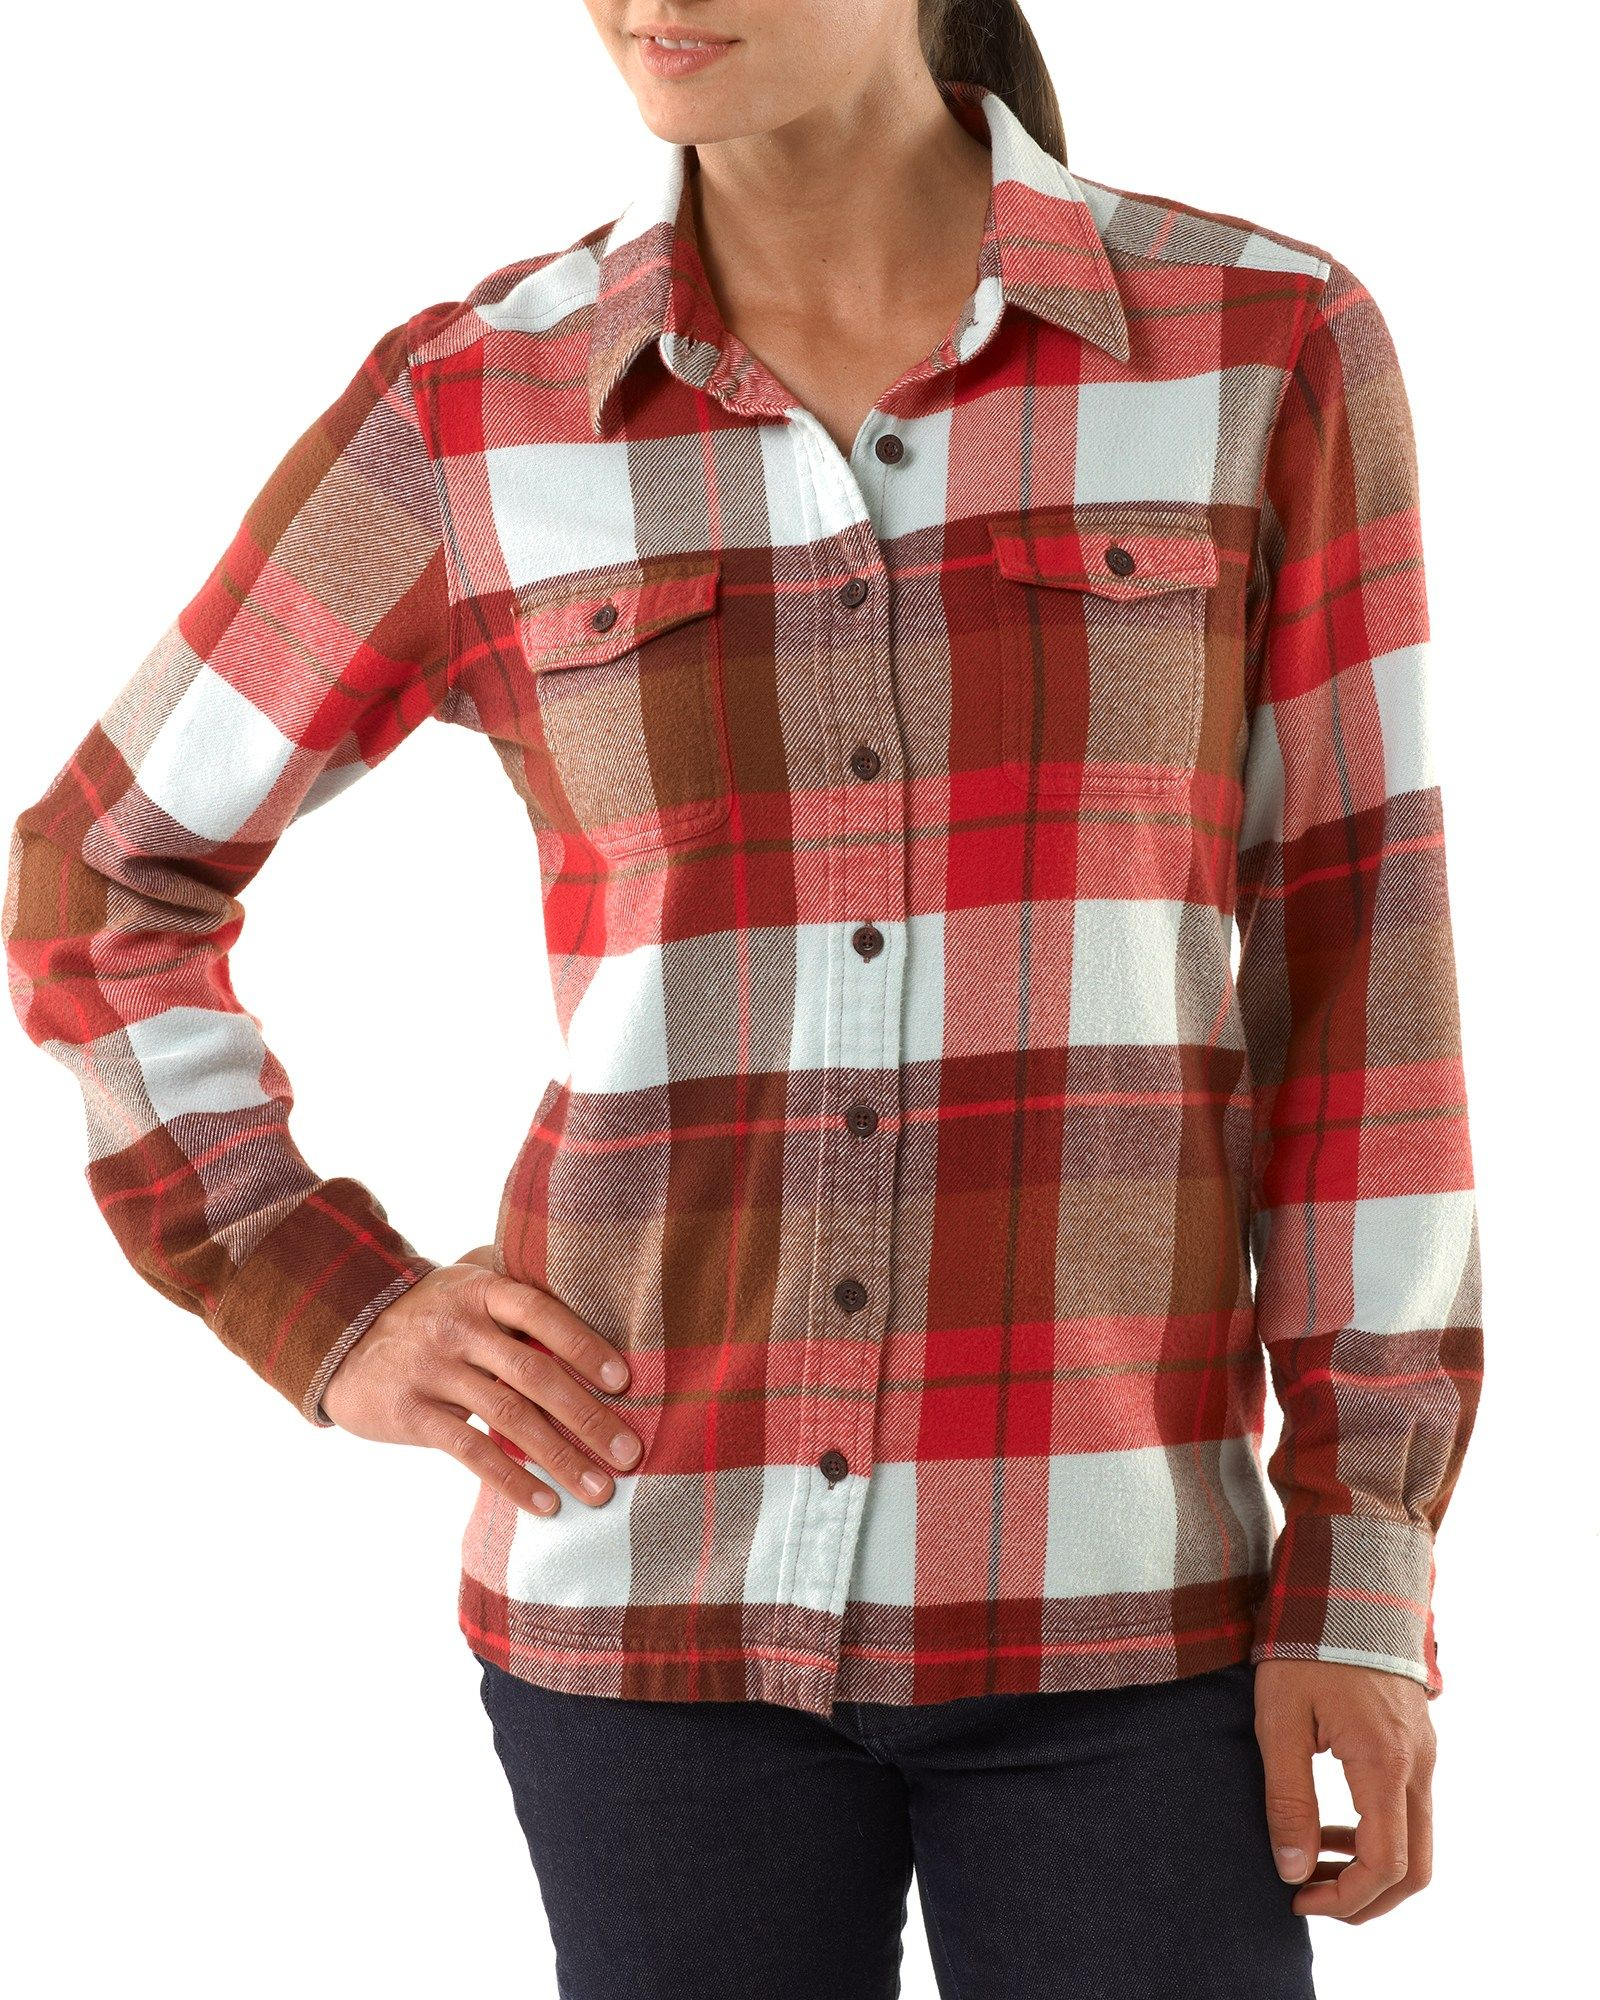 8d97b14a Patagonia Women's Fjord Flannel Shirt Navy Blue/Boxwood Plaid 14 ...